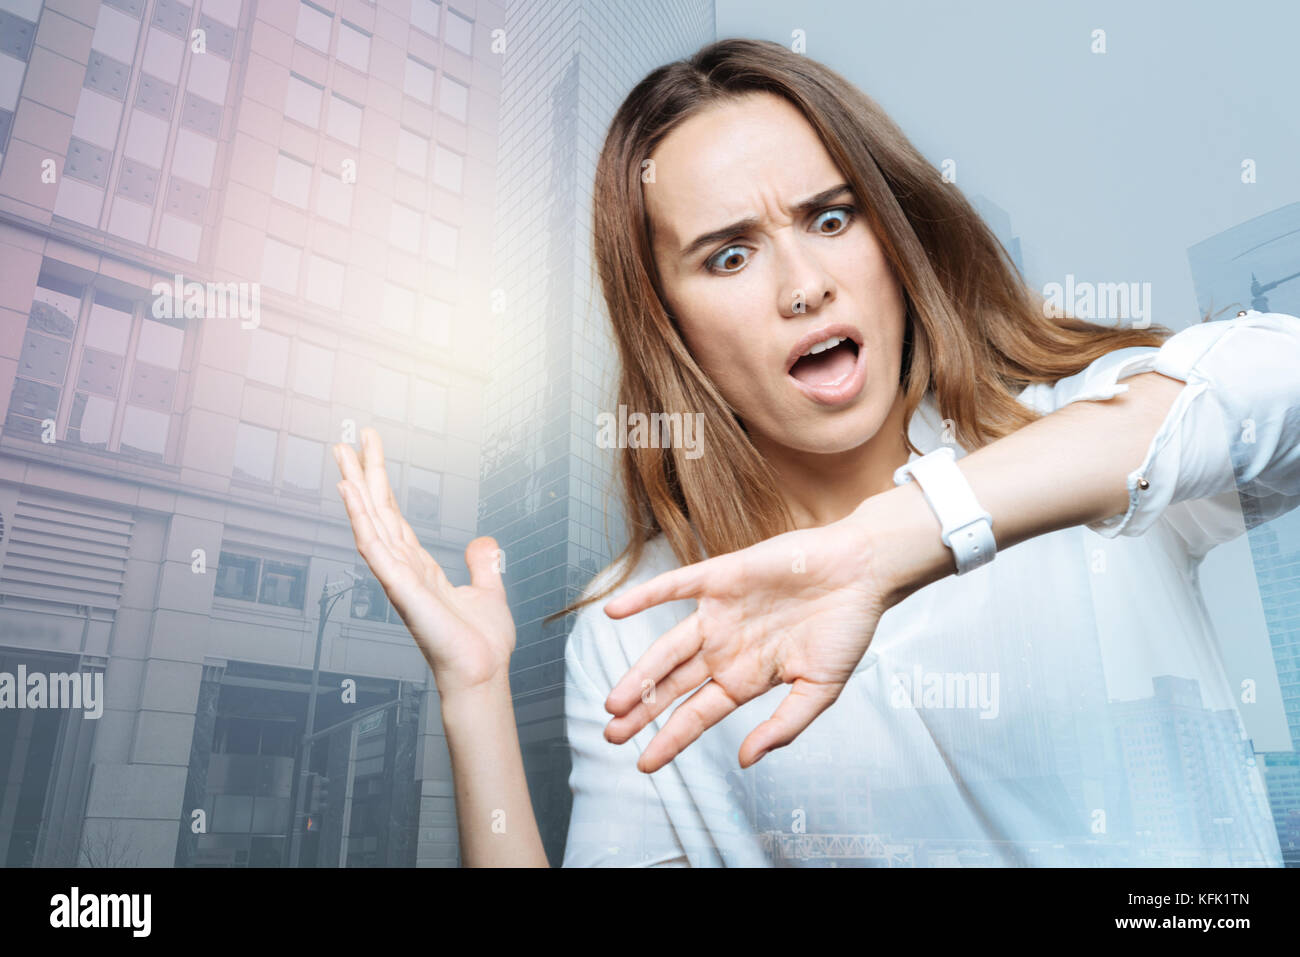 Unhappy surprised woman looking at her watch - Stock Image